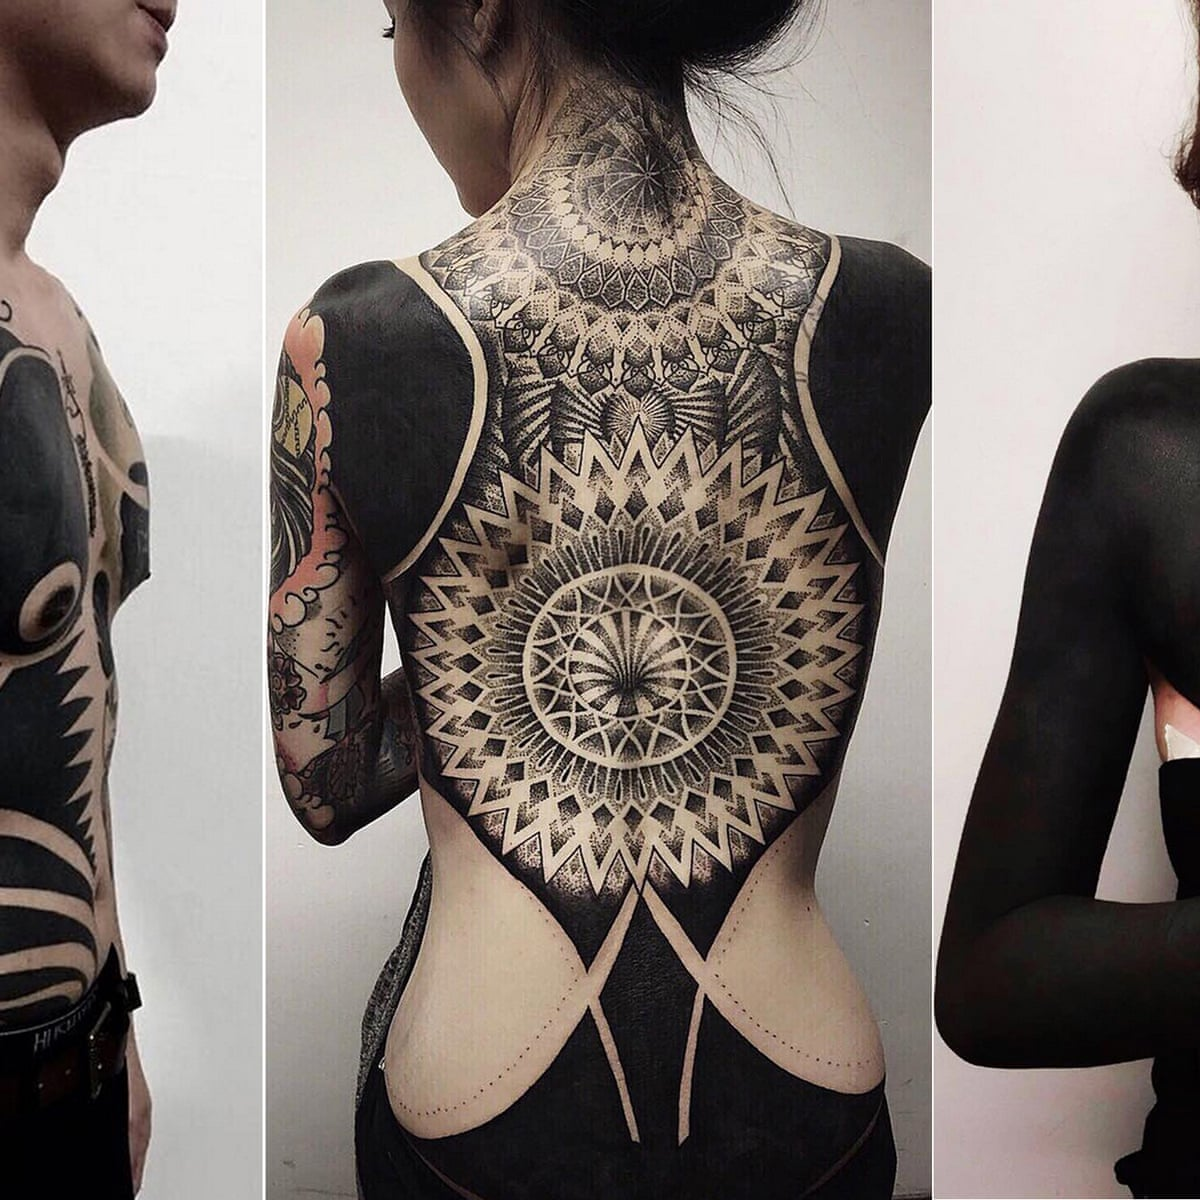 Dark Art The Rise Of The Blackout Tattoo Tattoos The Guardian A tattoo is a form of body modification where a design is made by inserting ink, dyes and pigments, either indelible or temporary, into the dermis layer of the skin to change the pigment. blackout tattoo